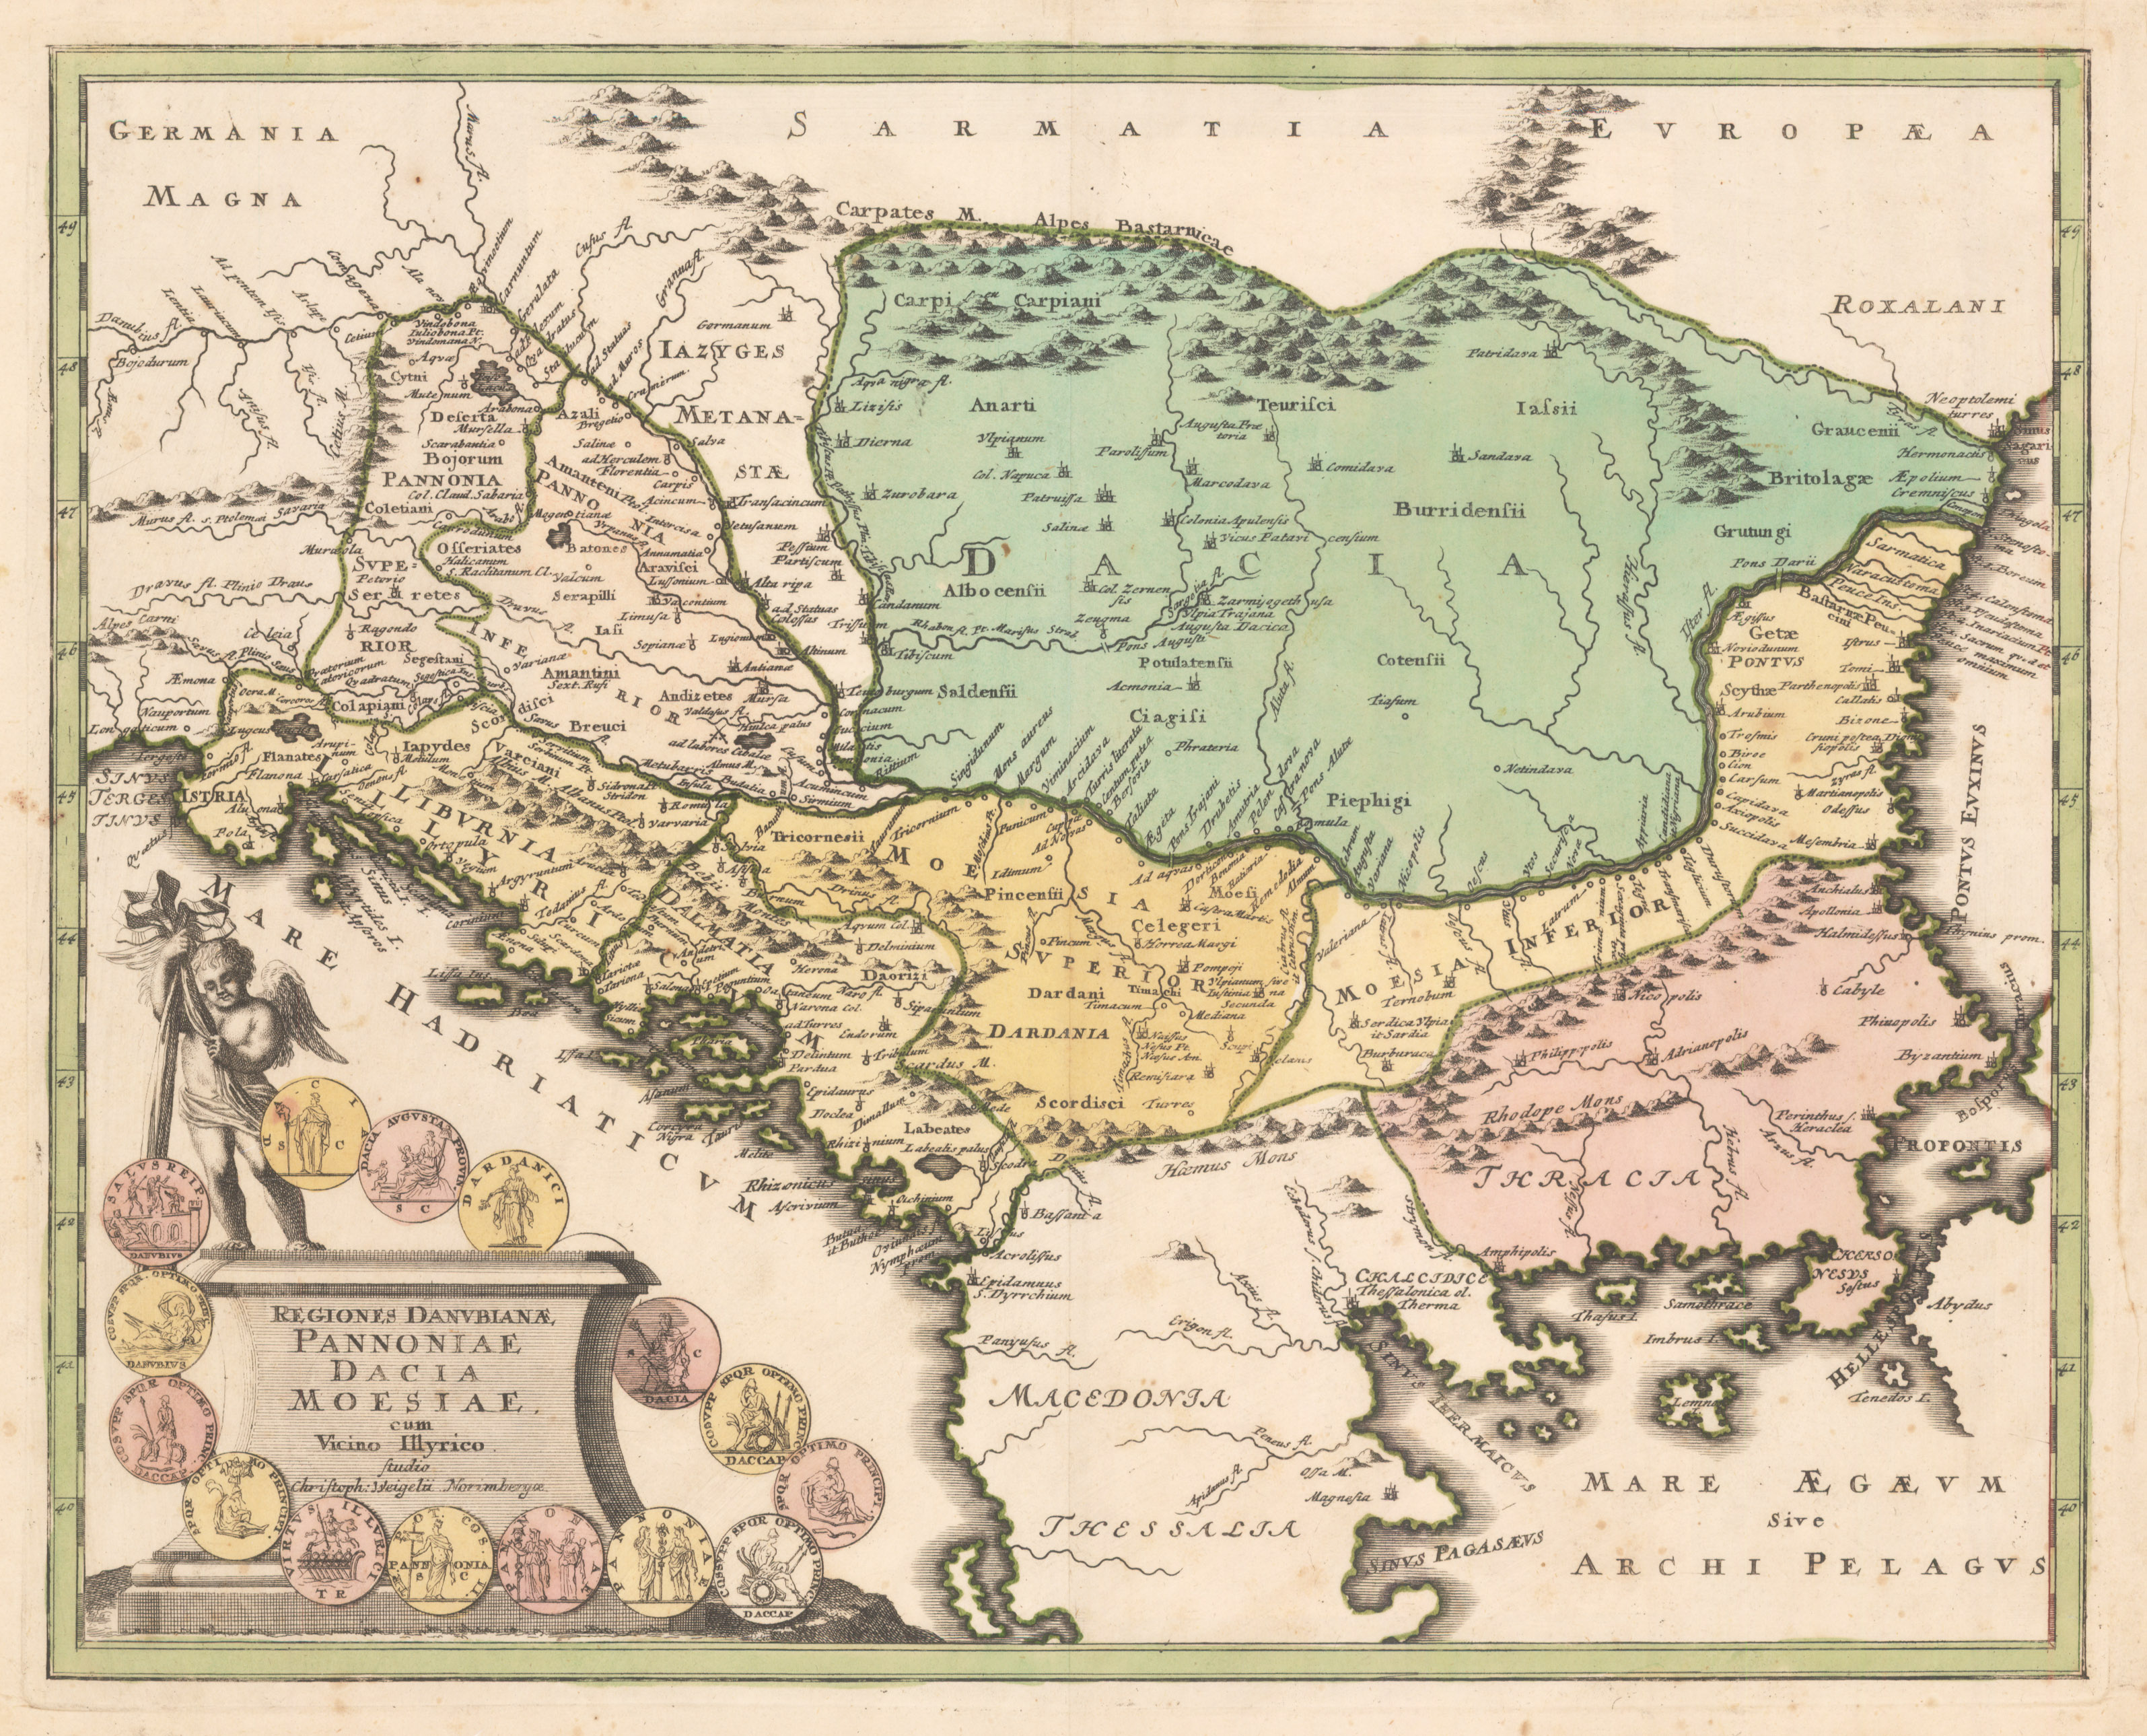 This Is An Antique Map Of Europe Southern Regiones Danubianae